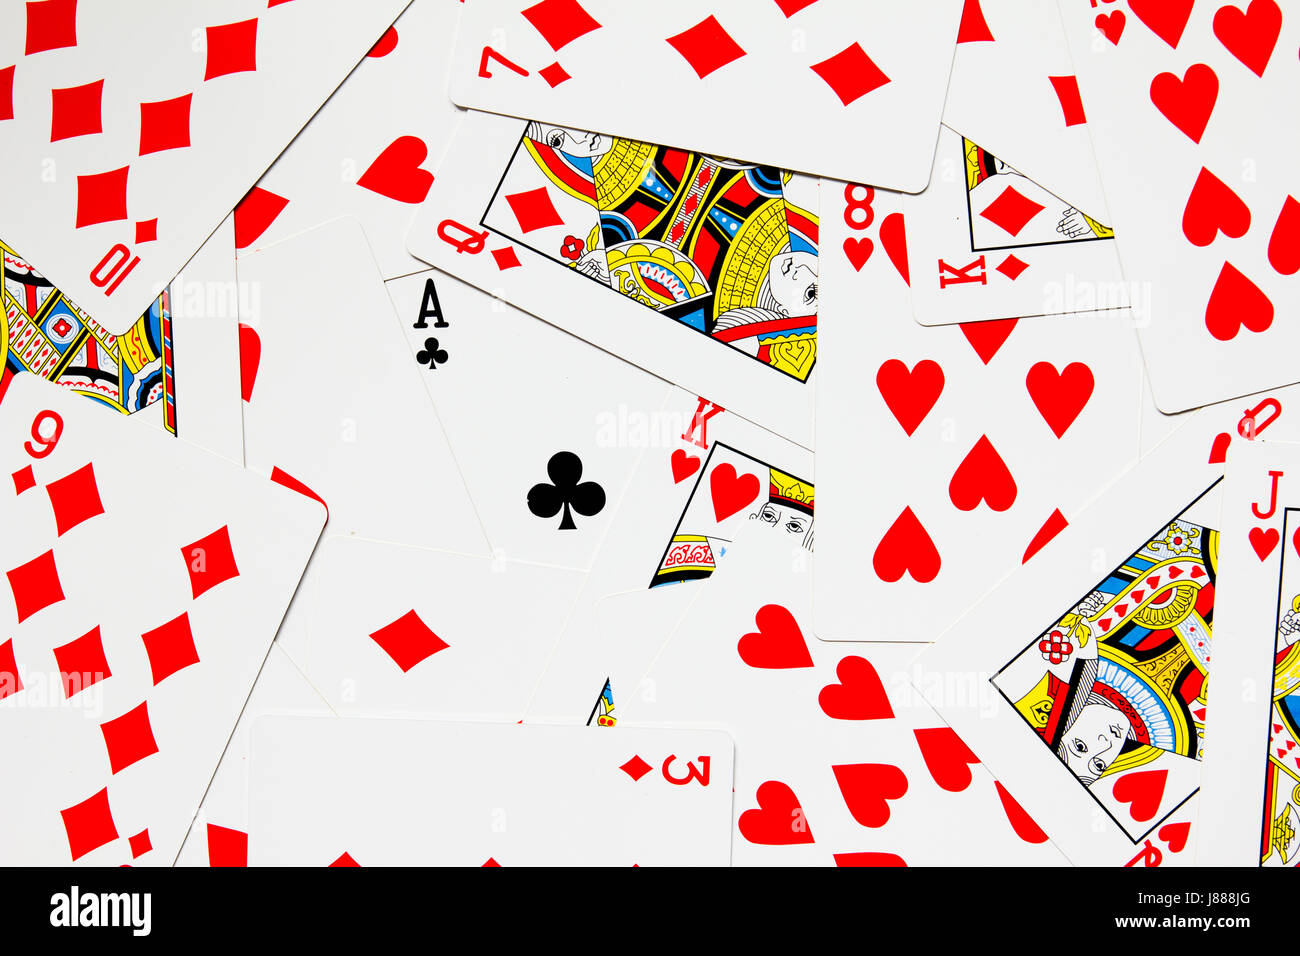 vector royalty spade image club card free diamond suit heart playing